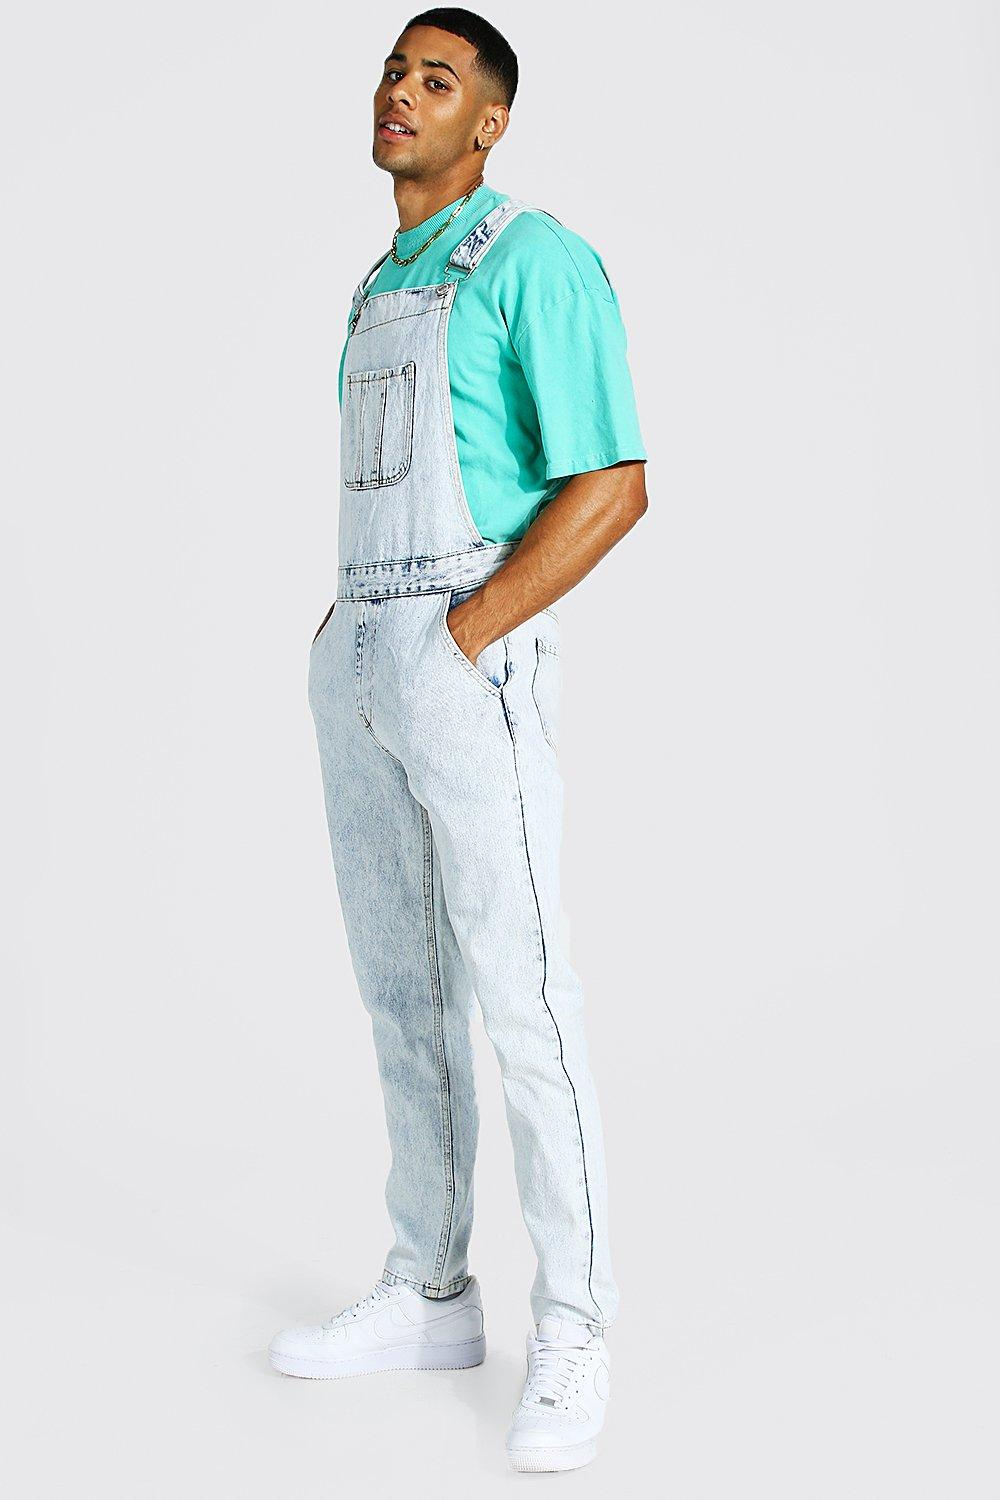 90s Outfits for Guys | Trendy, Party, Cool, Casaul Mens Slim Rigid Long Dungaree - Blue $33.00 AT vintagedancer.com